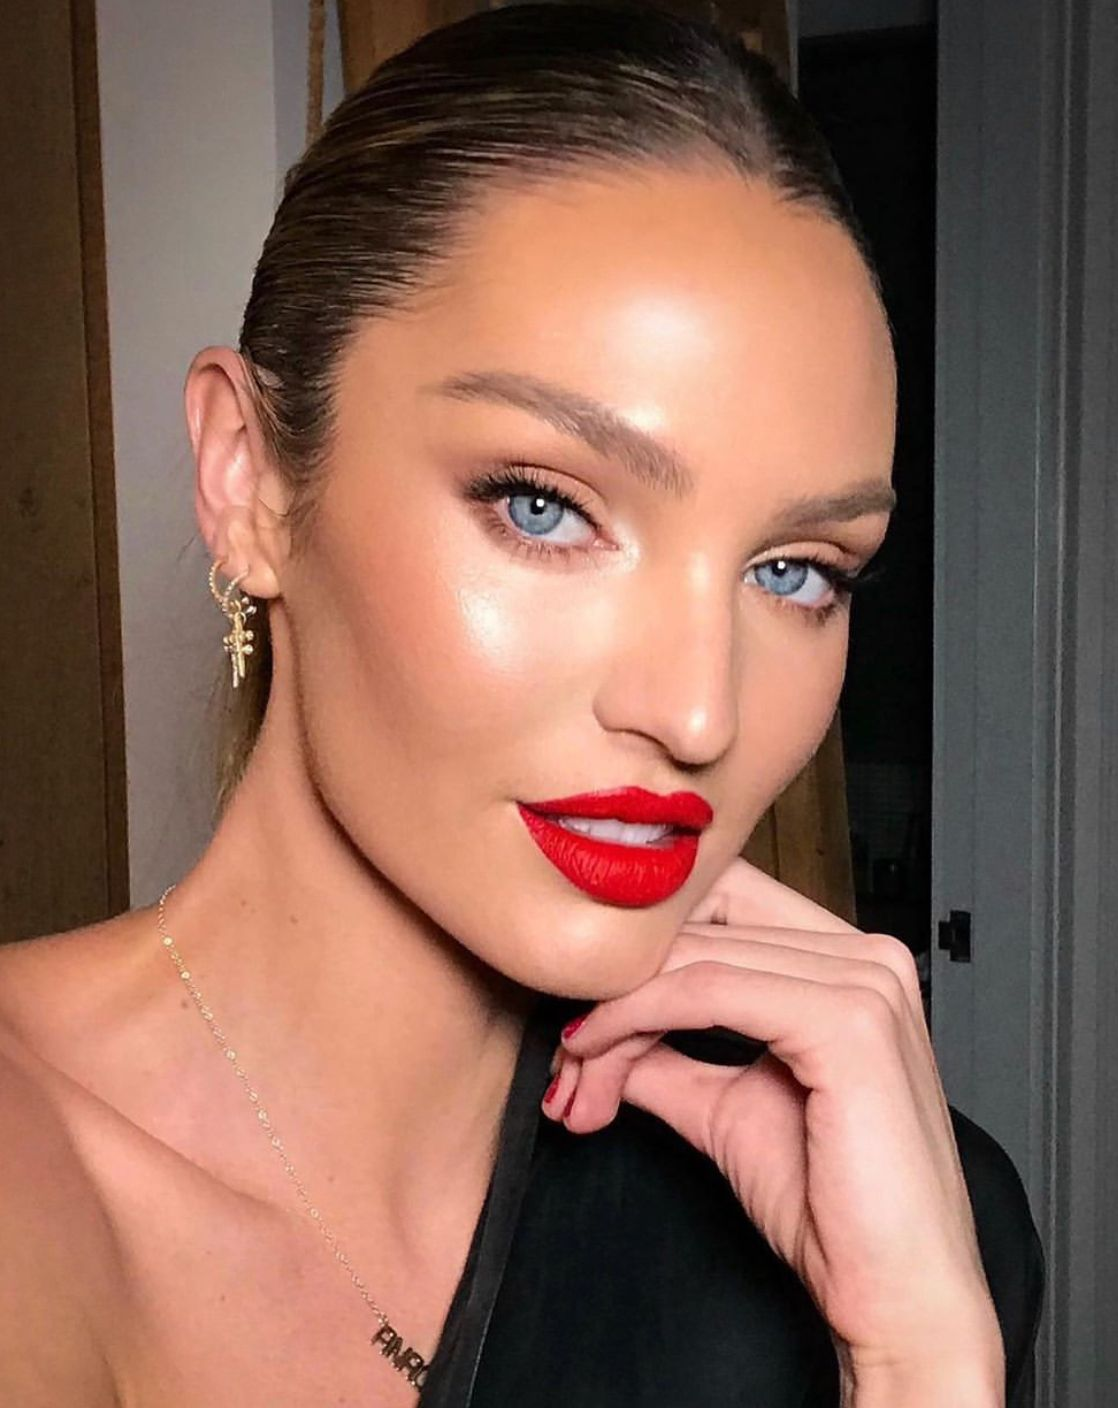 Candice Swanepoel Highlighter And Glossy Red Lipstick Gorgeous